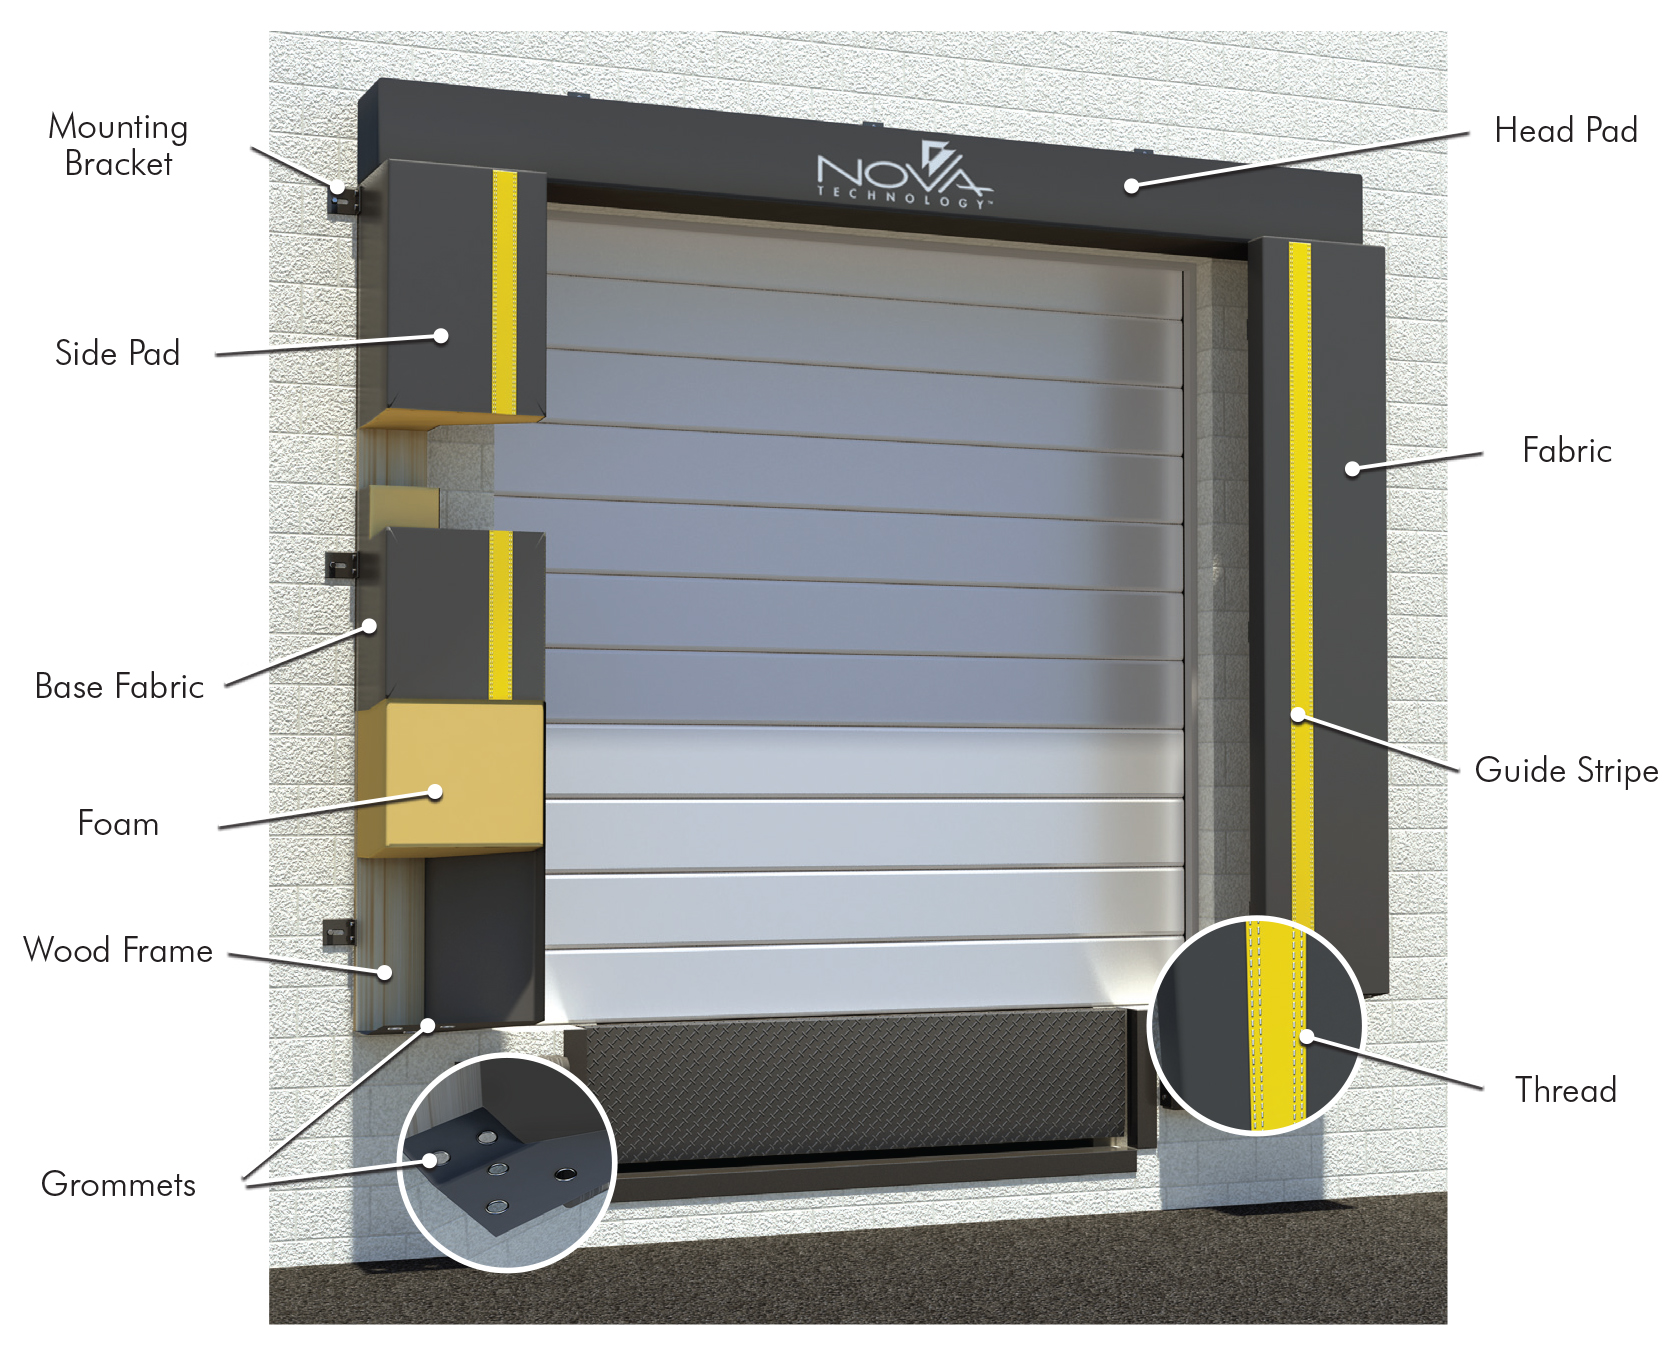 DESIGNED FOR DOOR OPENINGS UP TO 10 FT WIDE X 9 FT HIGH FPU Series Dock Seal\u2014accommodates larger doors and provides a positive foam seal\u2026 Read more »  sc 1 st  Nova Technology & Dock Seals \u0026 Shelters Archives - Nova Technology